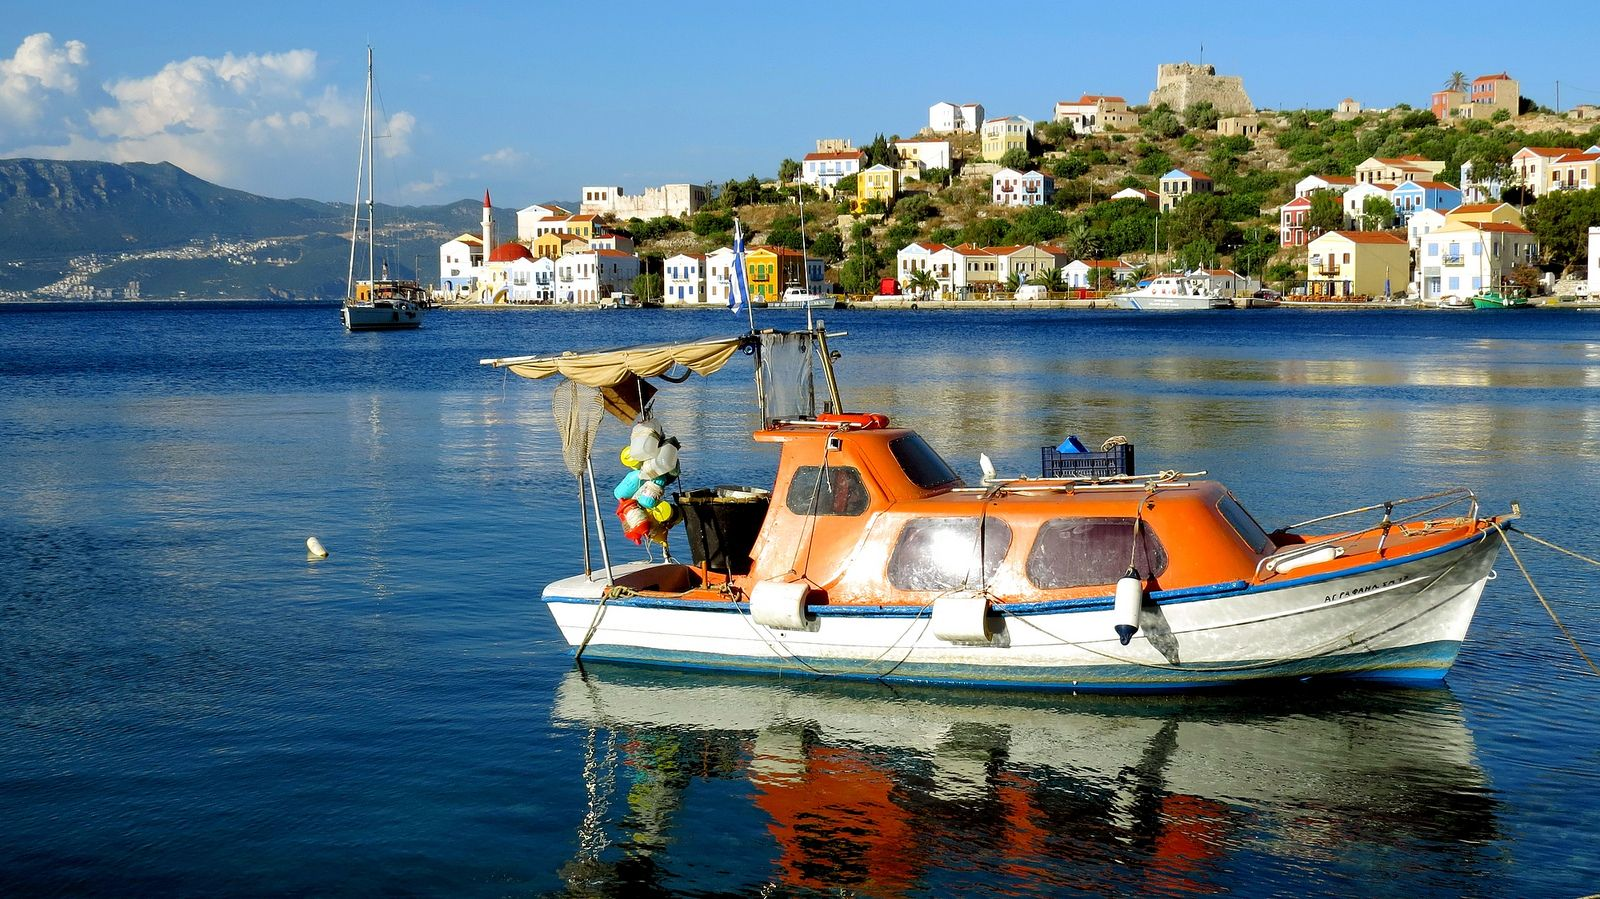 https://flic.kr/p/fkusr9 | Scenery with boat | Fishing boat reflected in the water and seashore. Kastelorizo island, Dodecanese, Greece